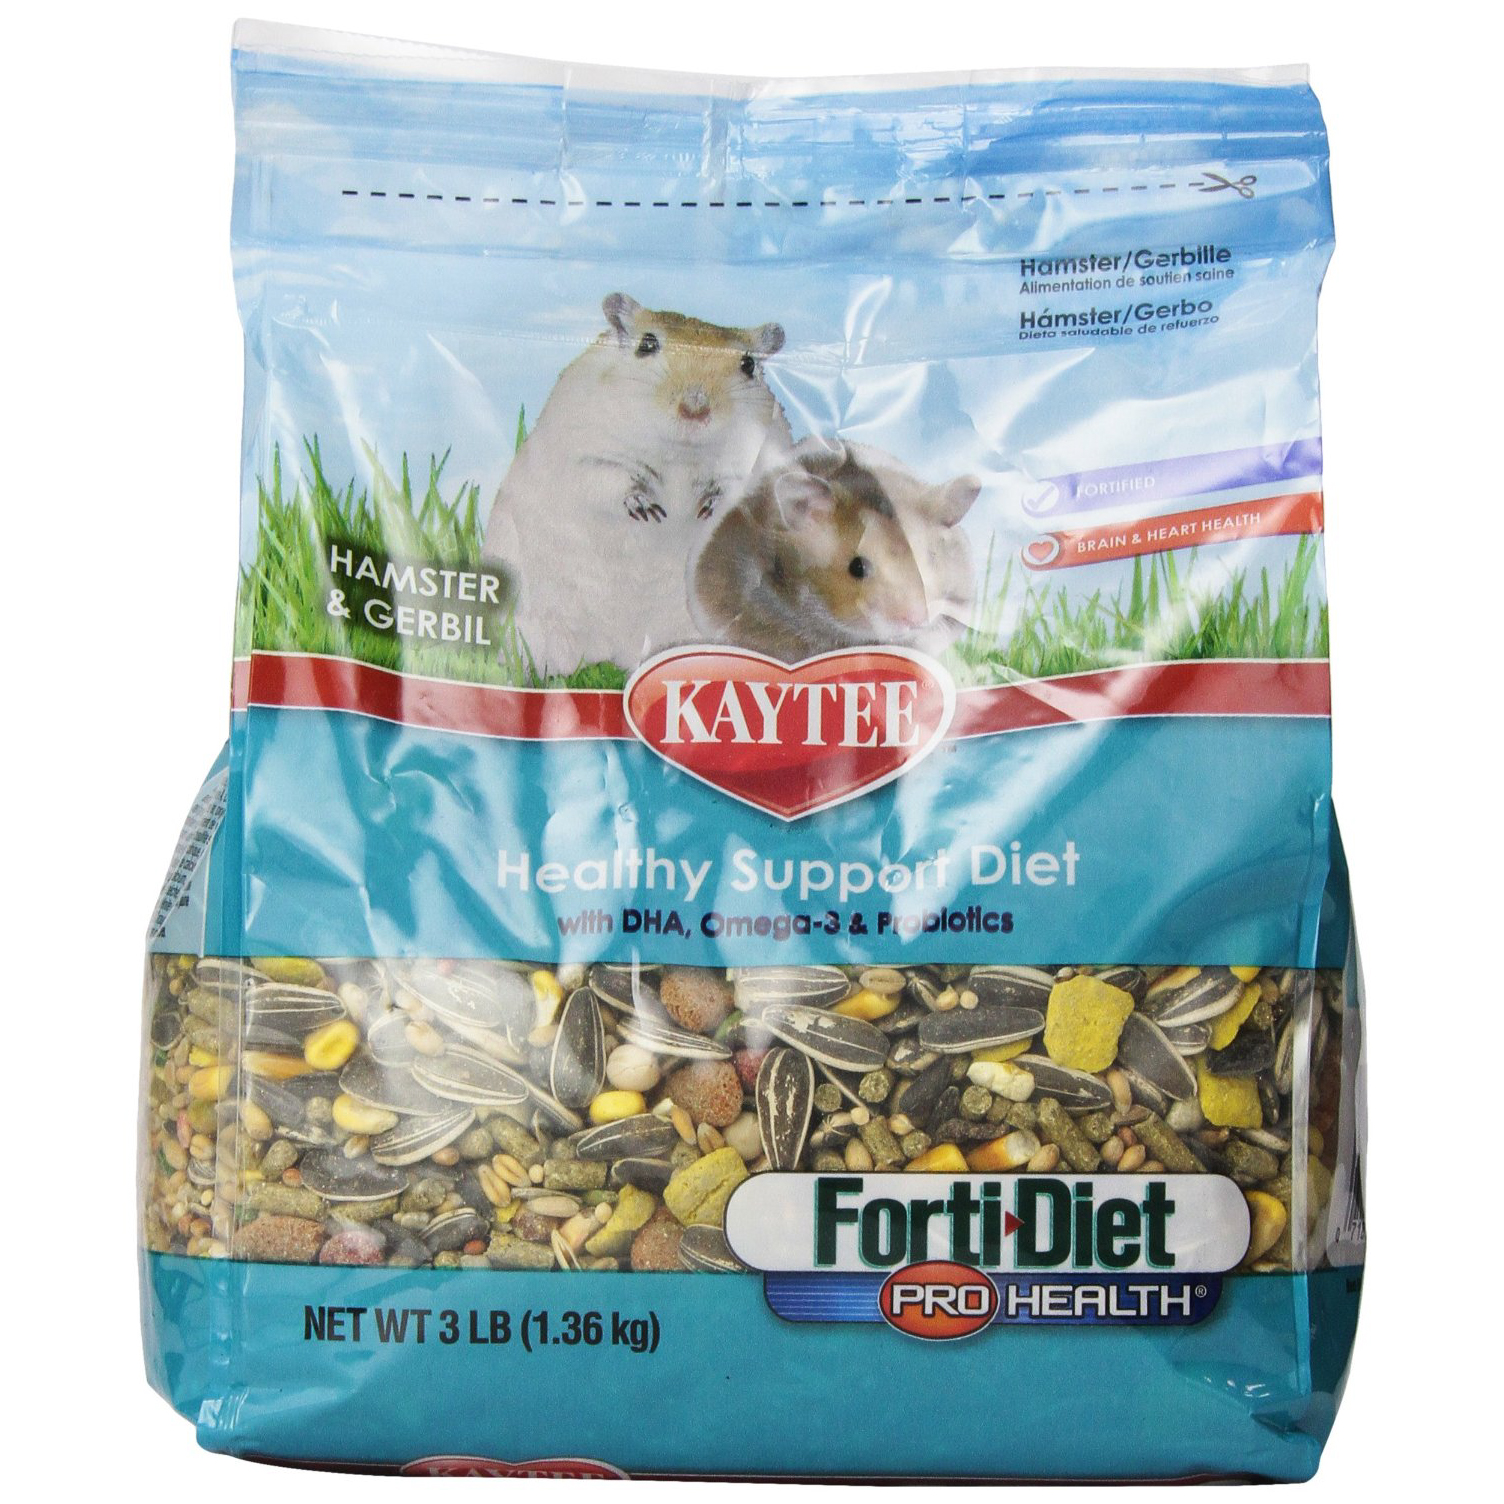 Alimentation Hamster kaytee forti diet pro health food for hamster/gerbil, 3 lbs.